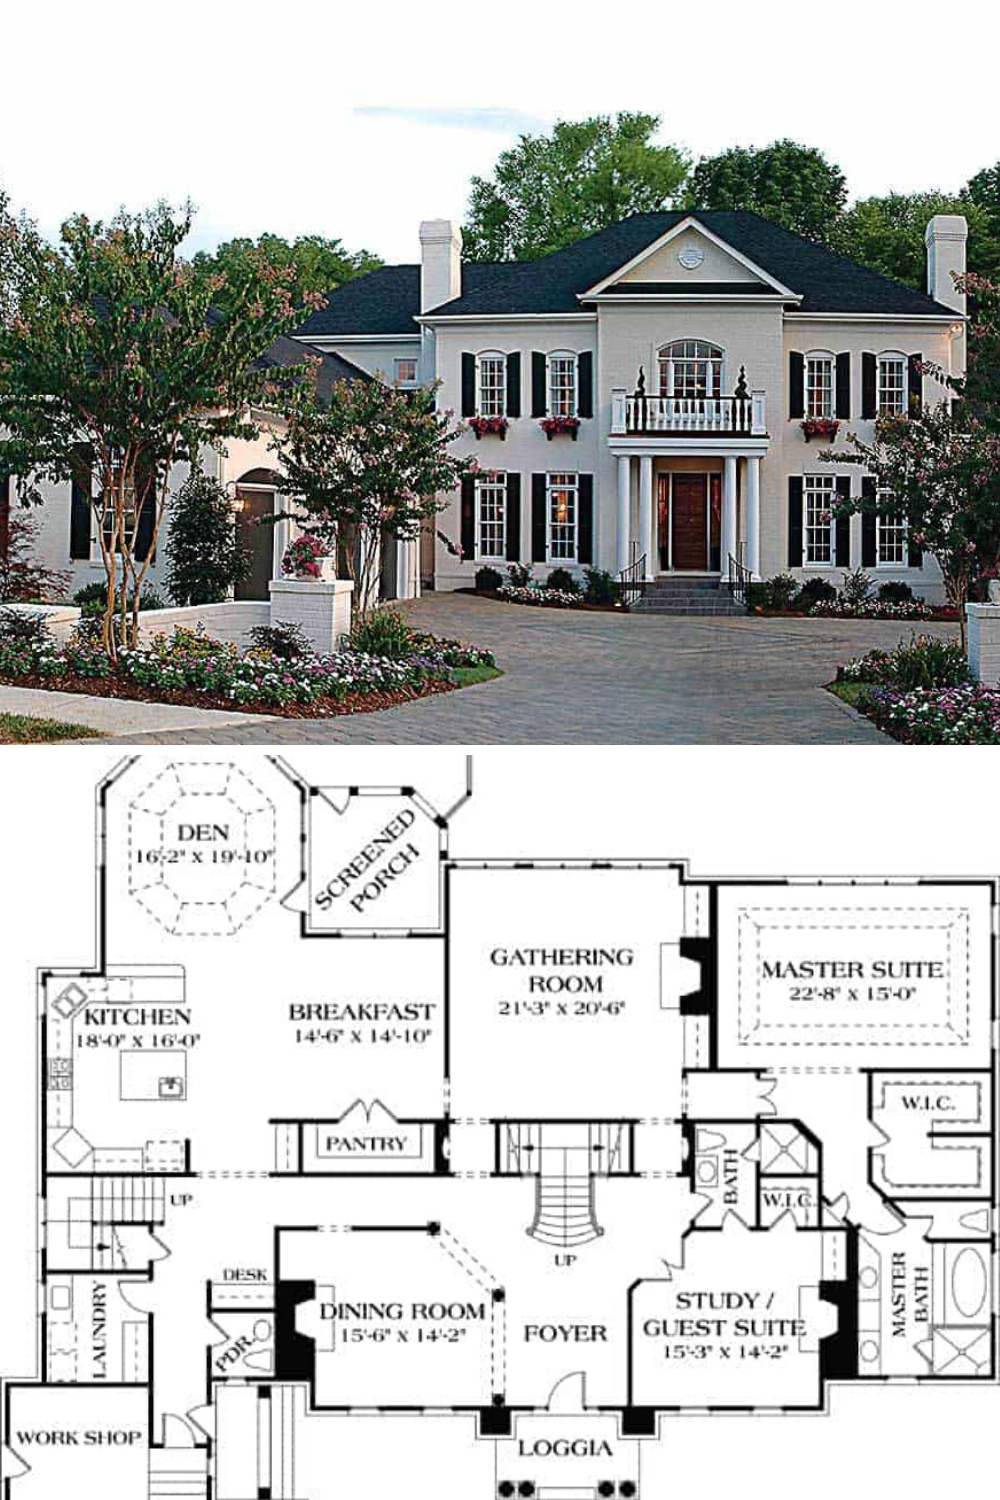 5 Bedroom Two Story Georgian Home With Twin Chimneys Floor Plan Colonial House Plans House Plans Mansion Sims House Plans